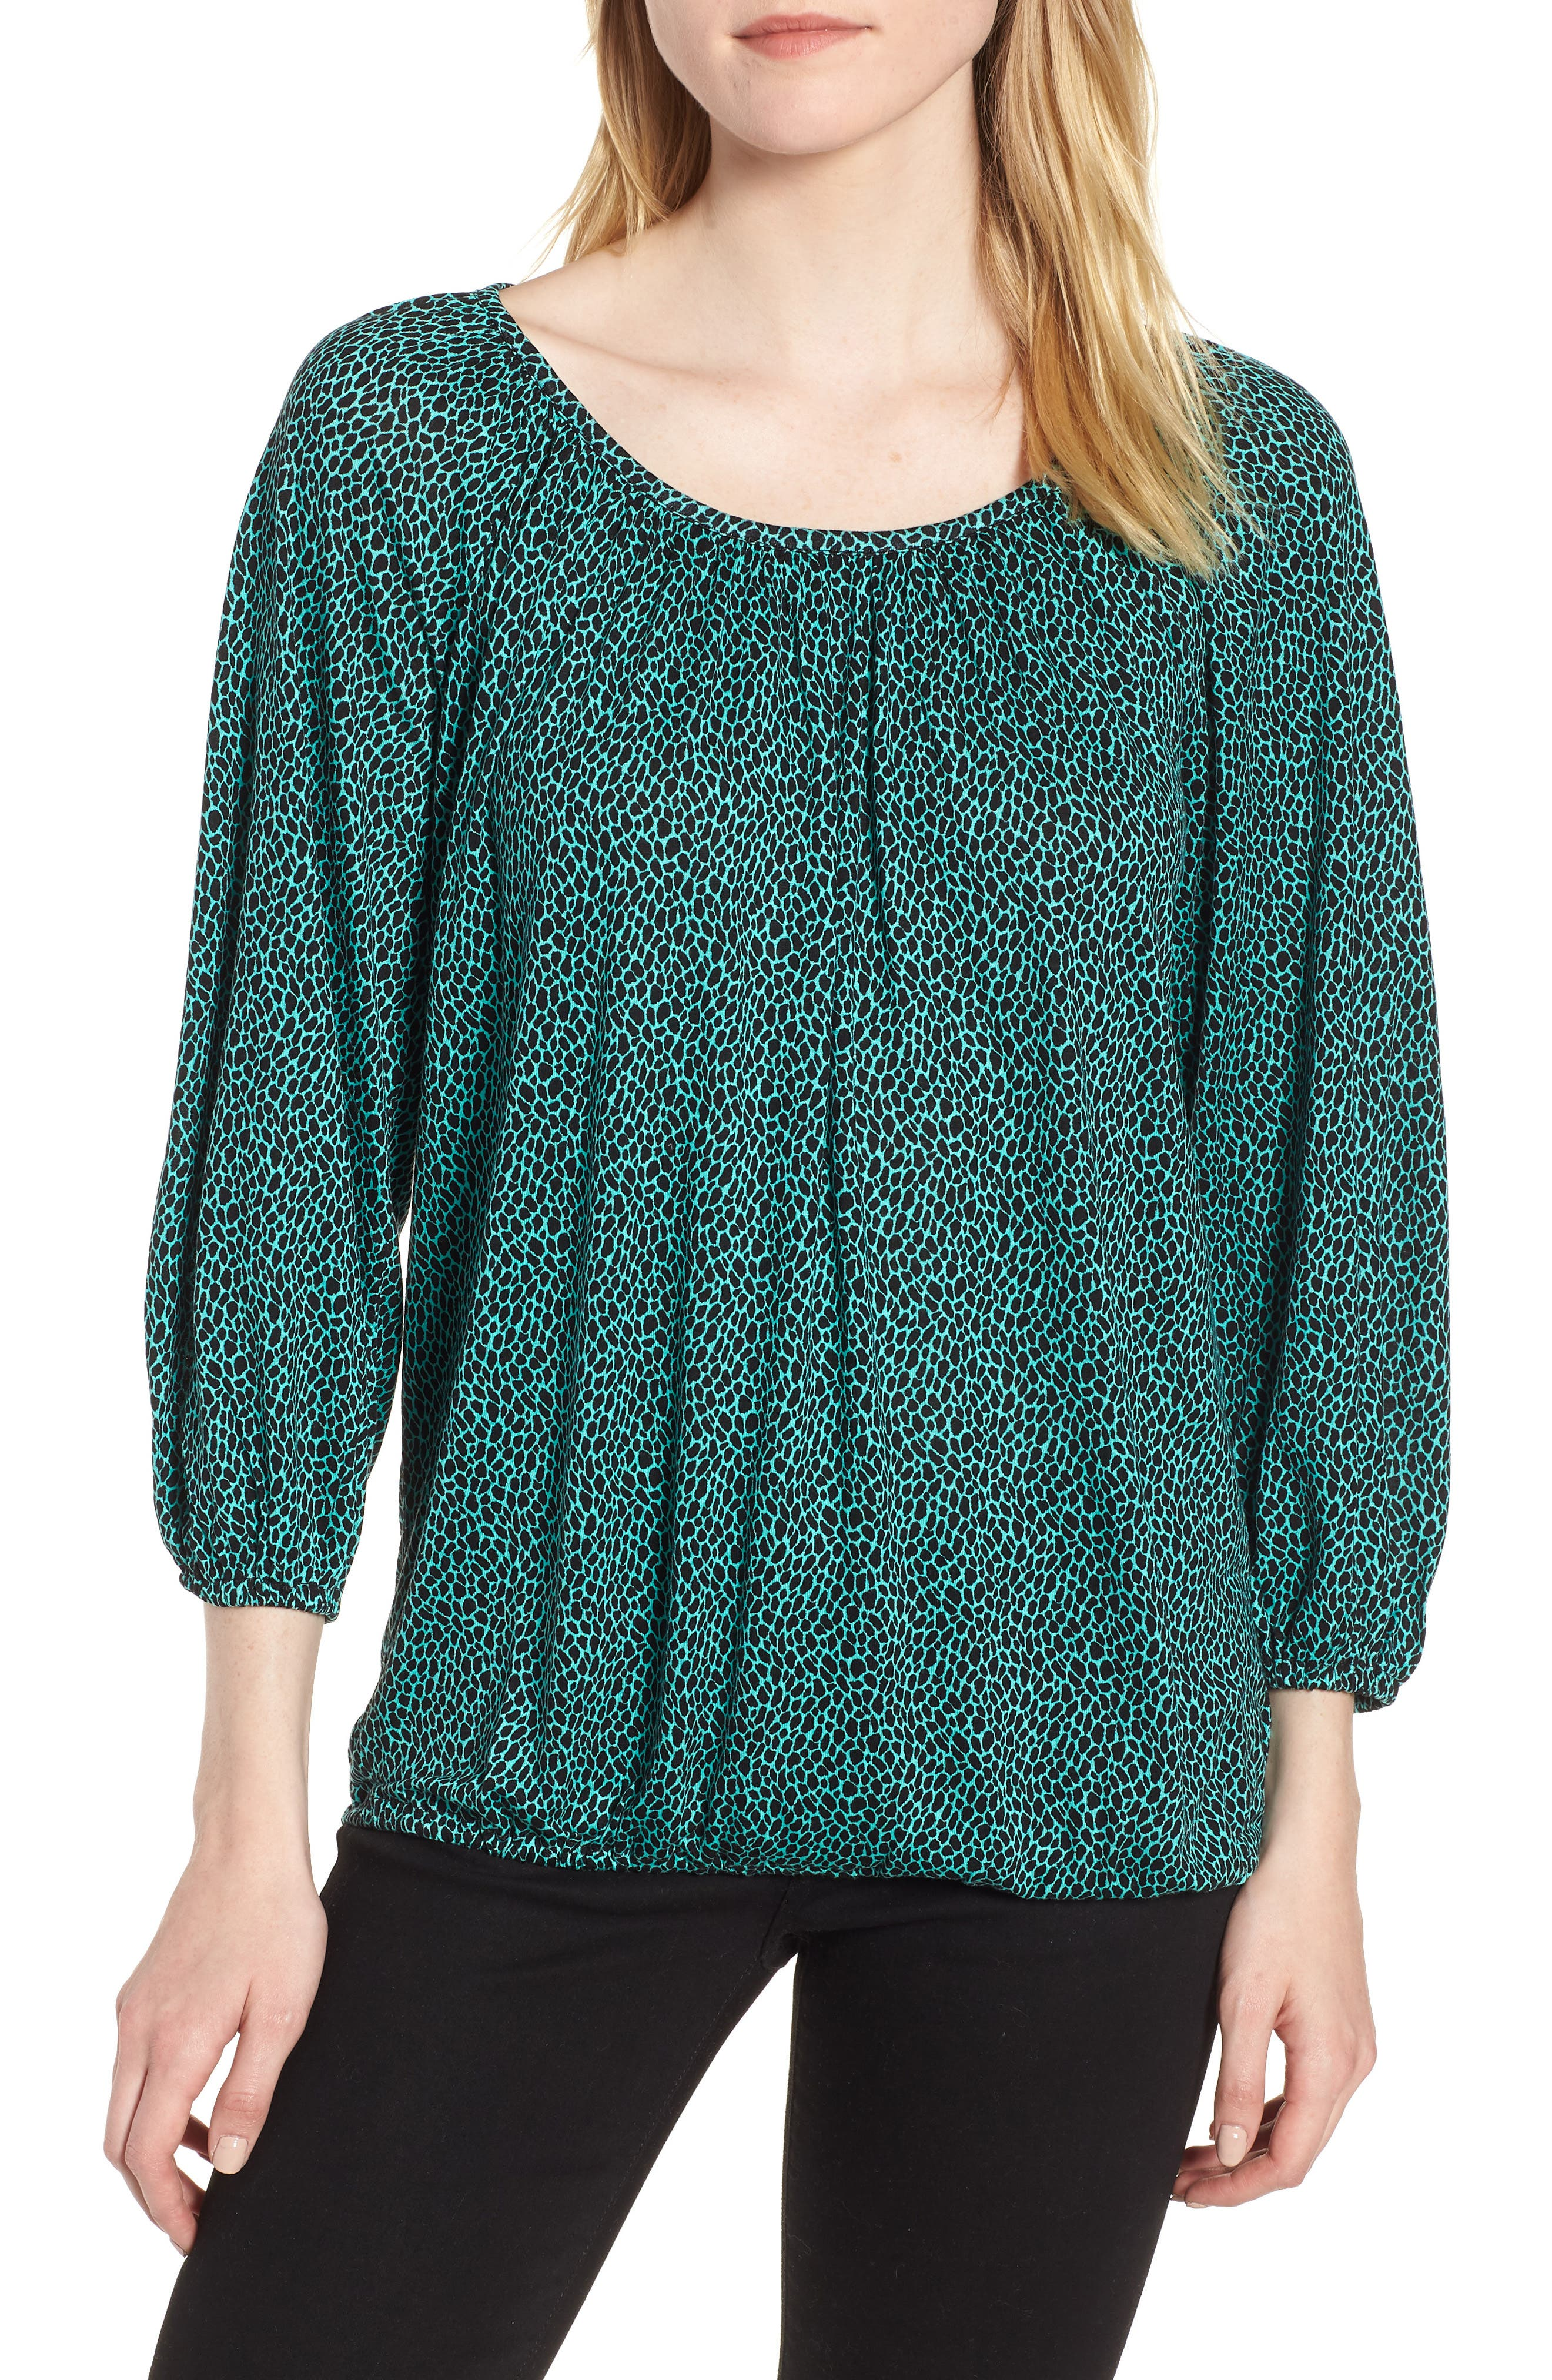 Graphic Leopard Print Peasant Top,                             Main thumbnail 1, color,